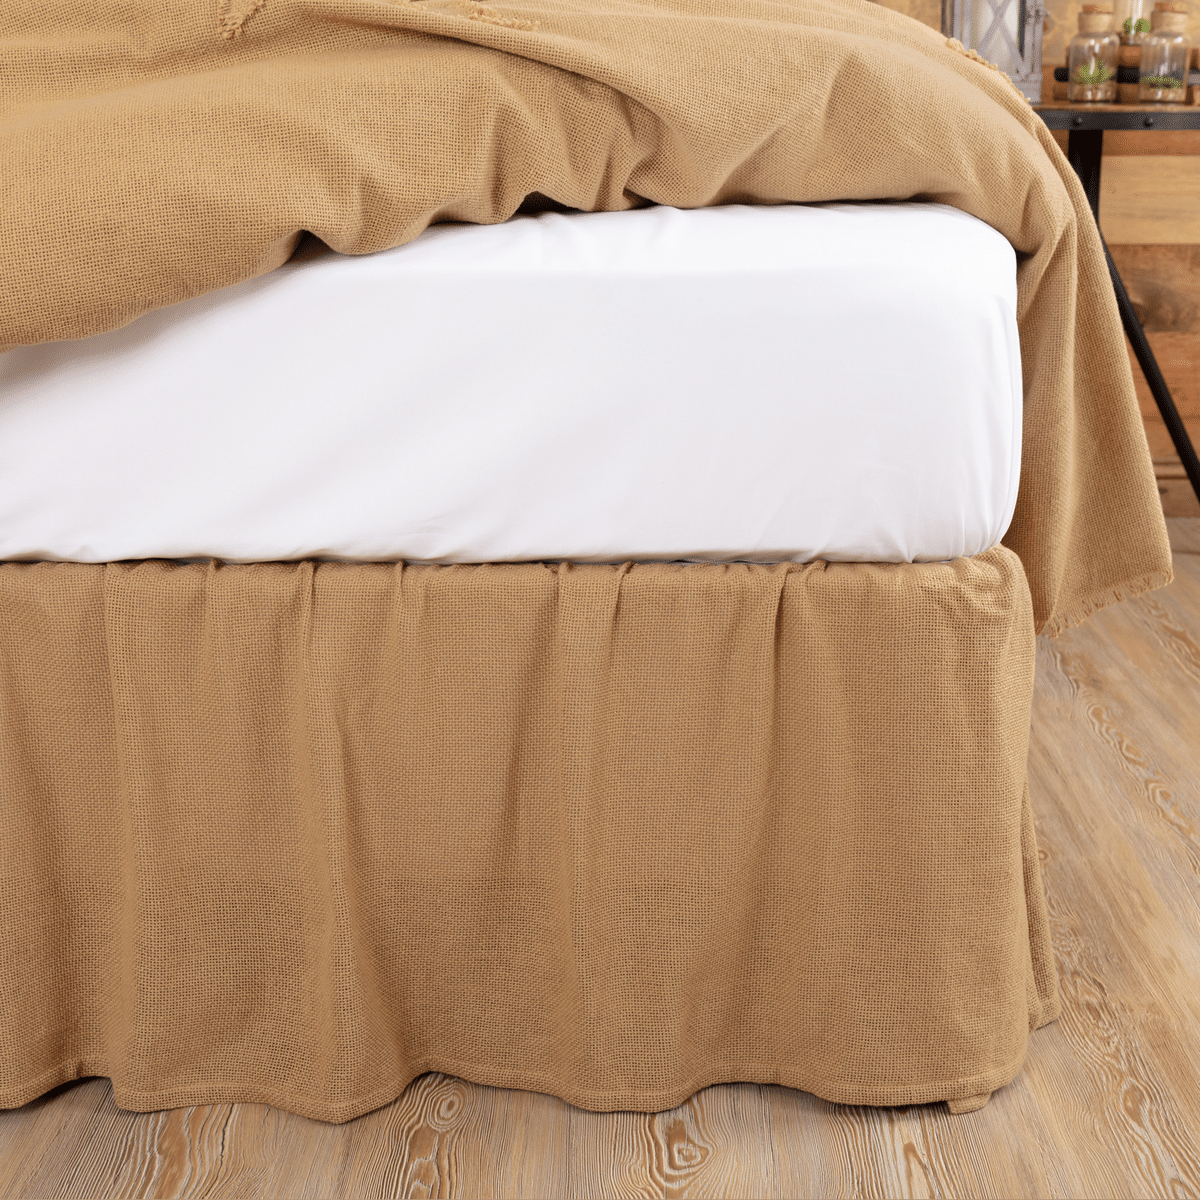 Country Bedding Burlap Fringed Bed Skirt Queen